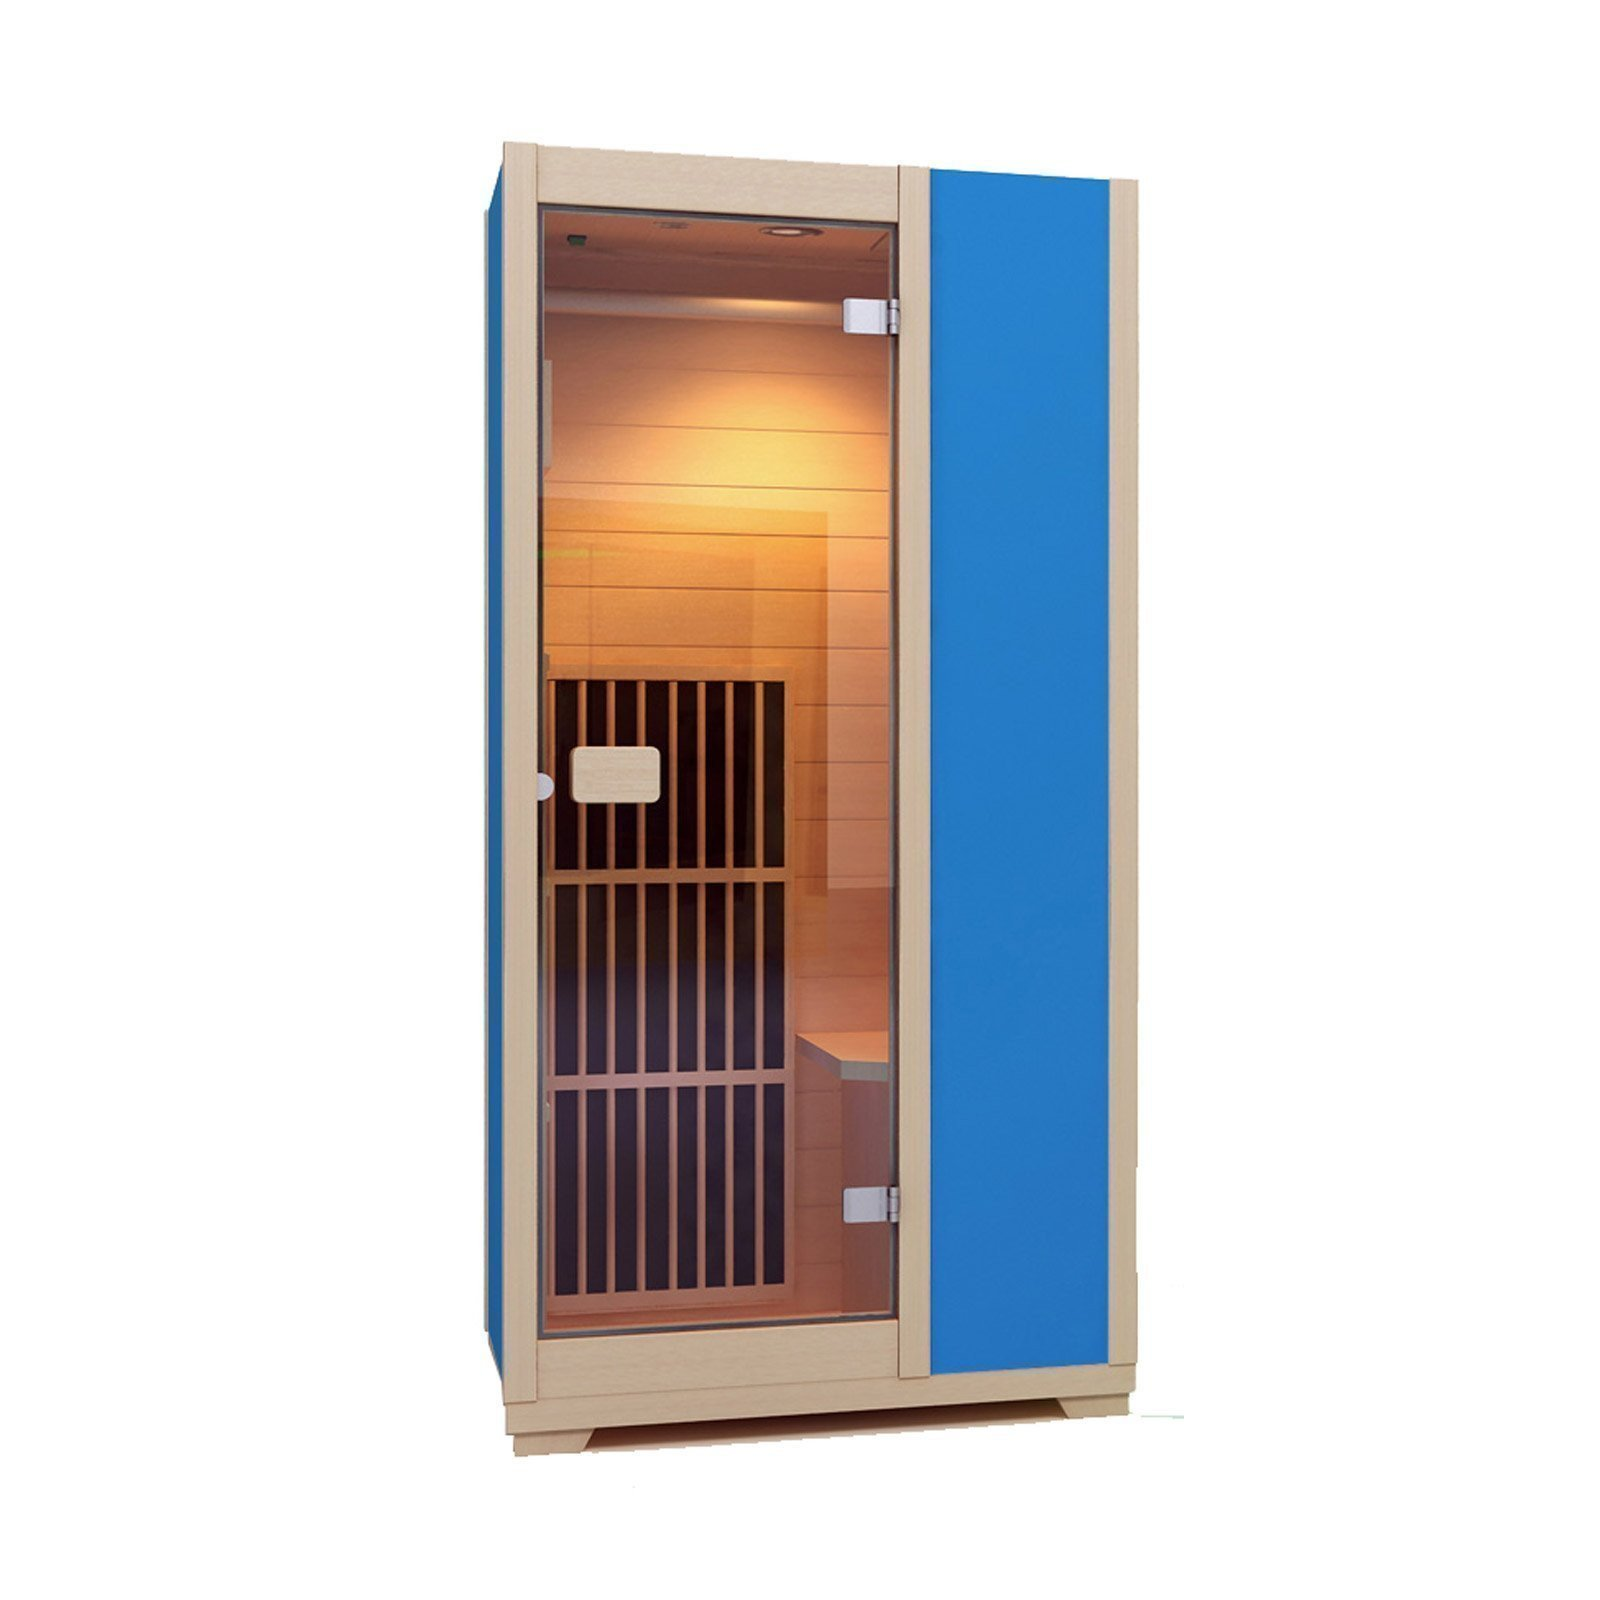 Zen 'Brighton' Infrared Sauna ZIV015 - Blue